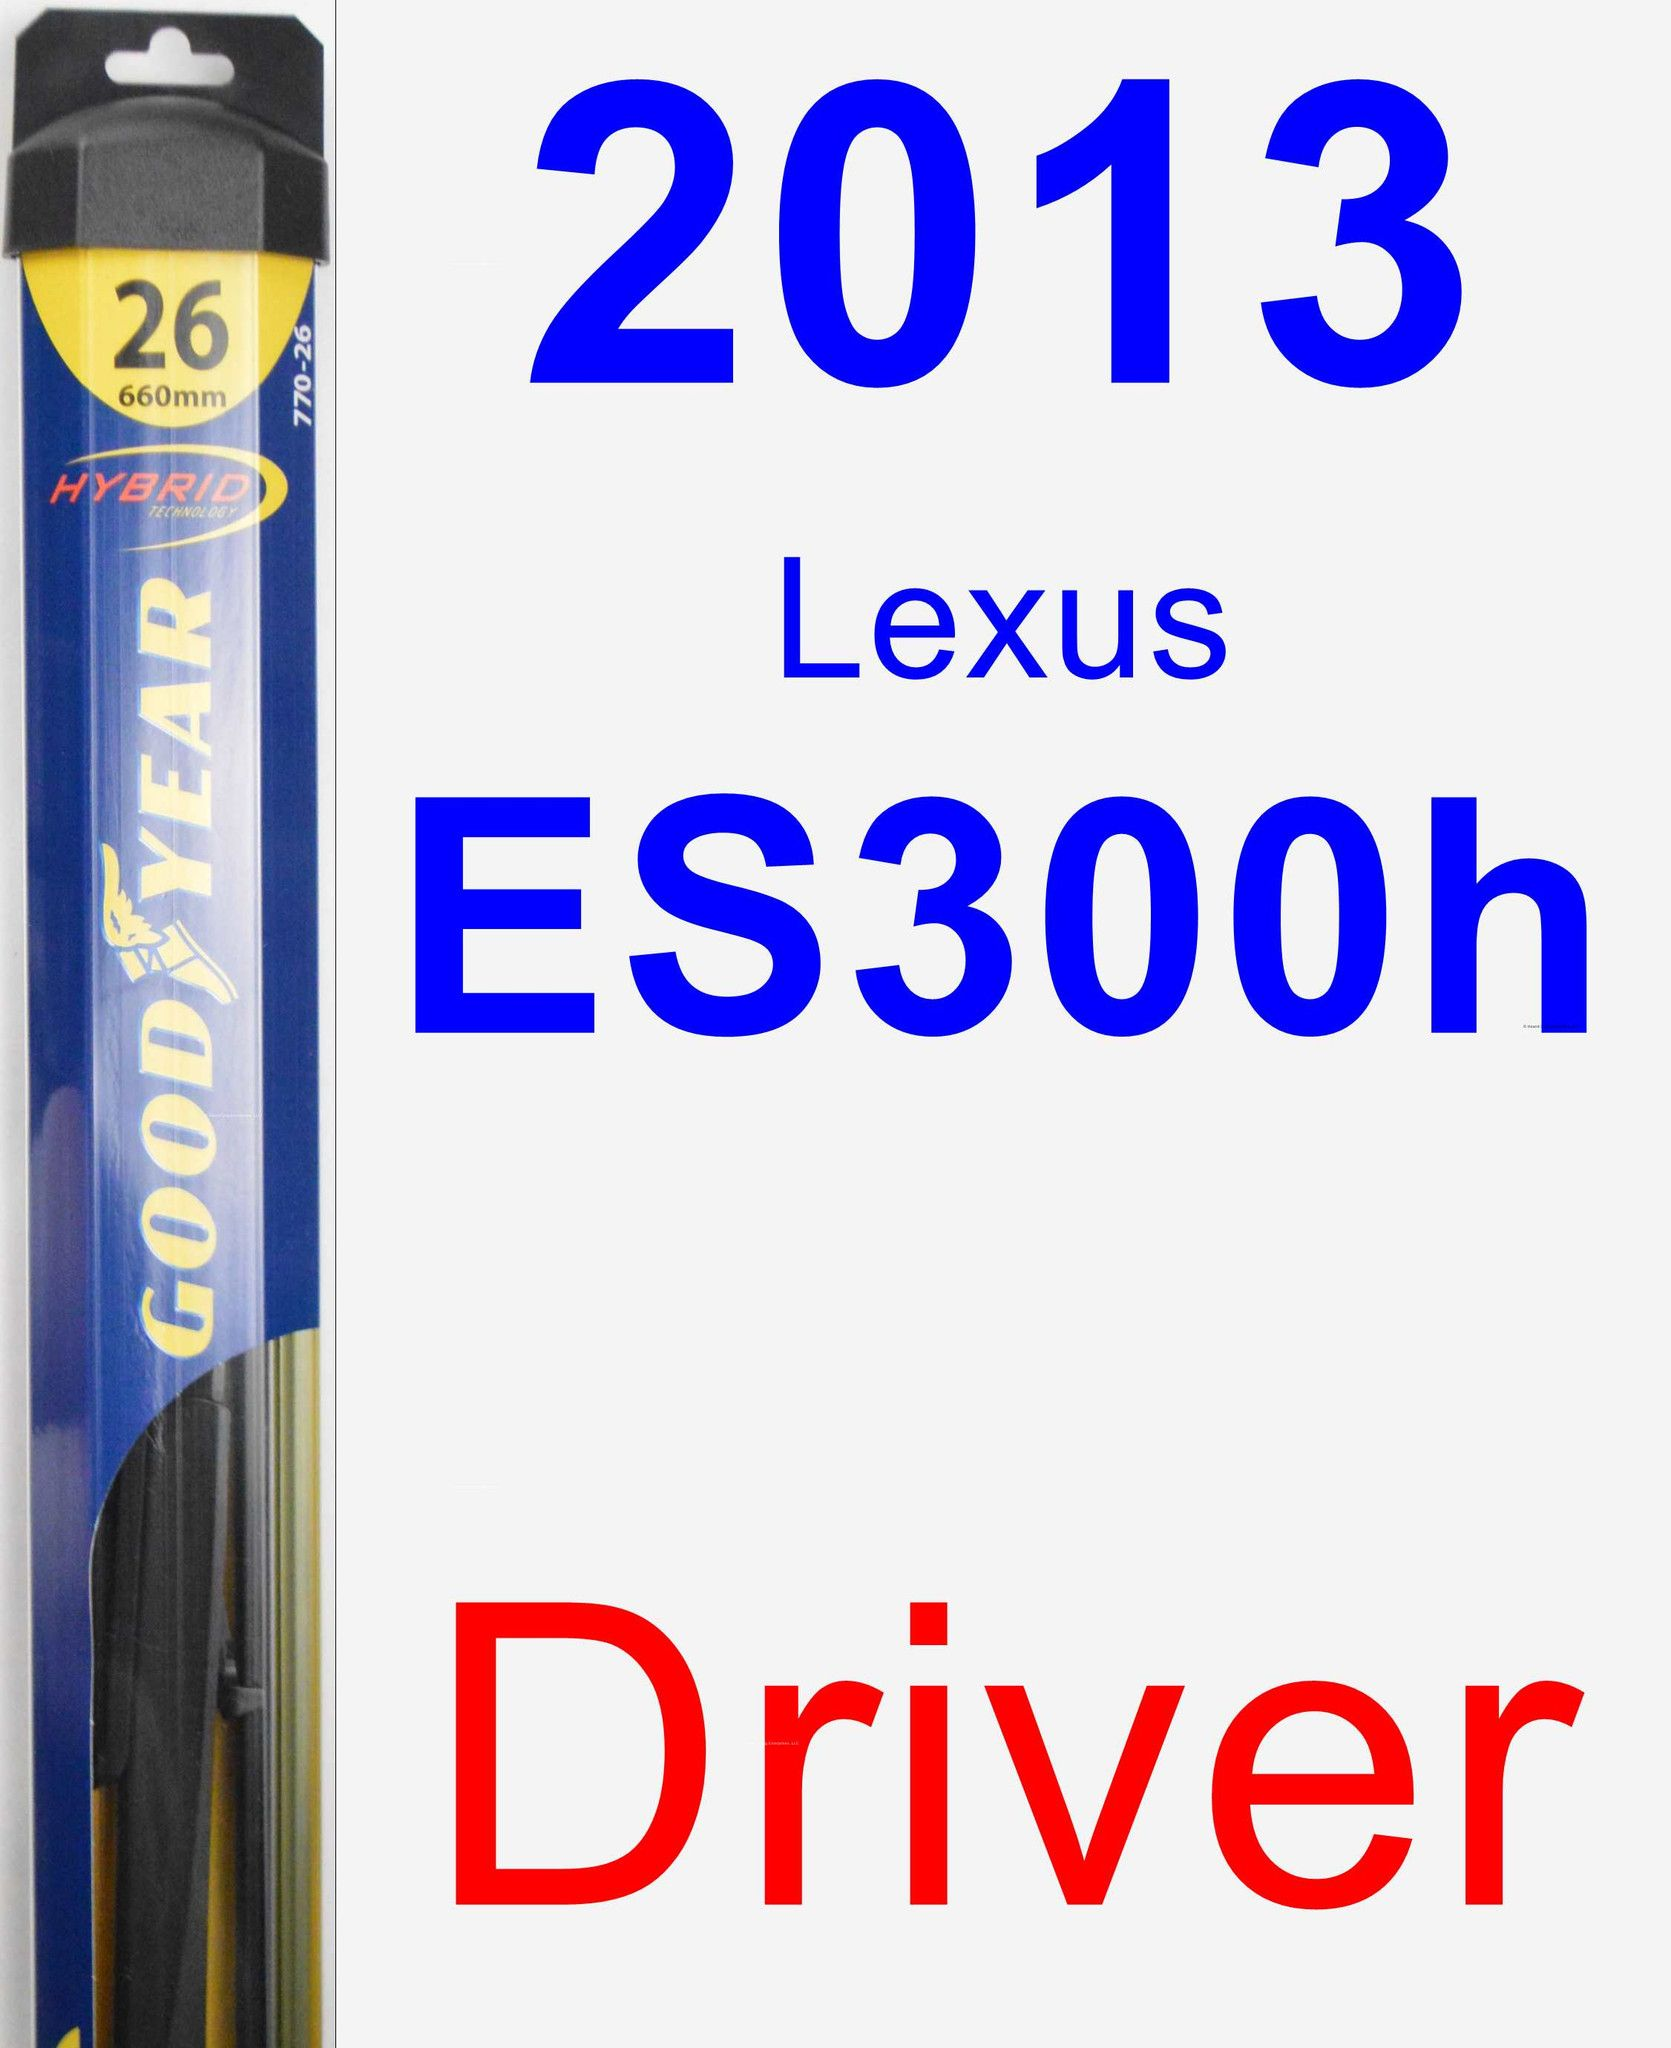 Driver Wiper Blade for 2013 Lexus ES300h Hybrid Wiper